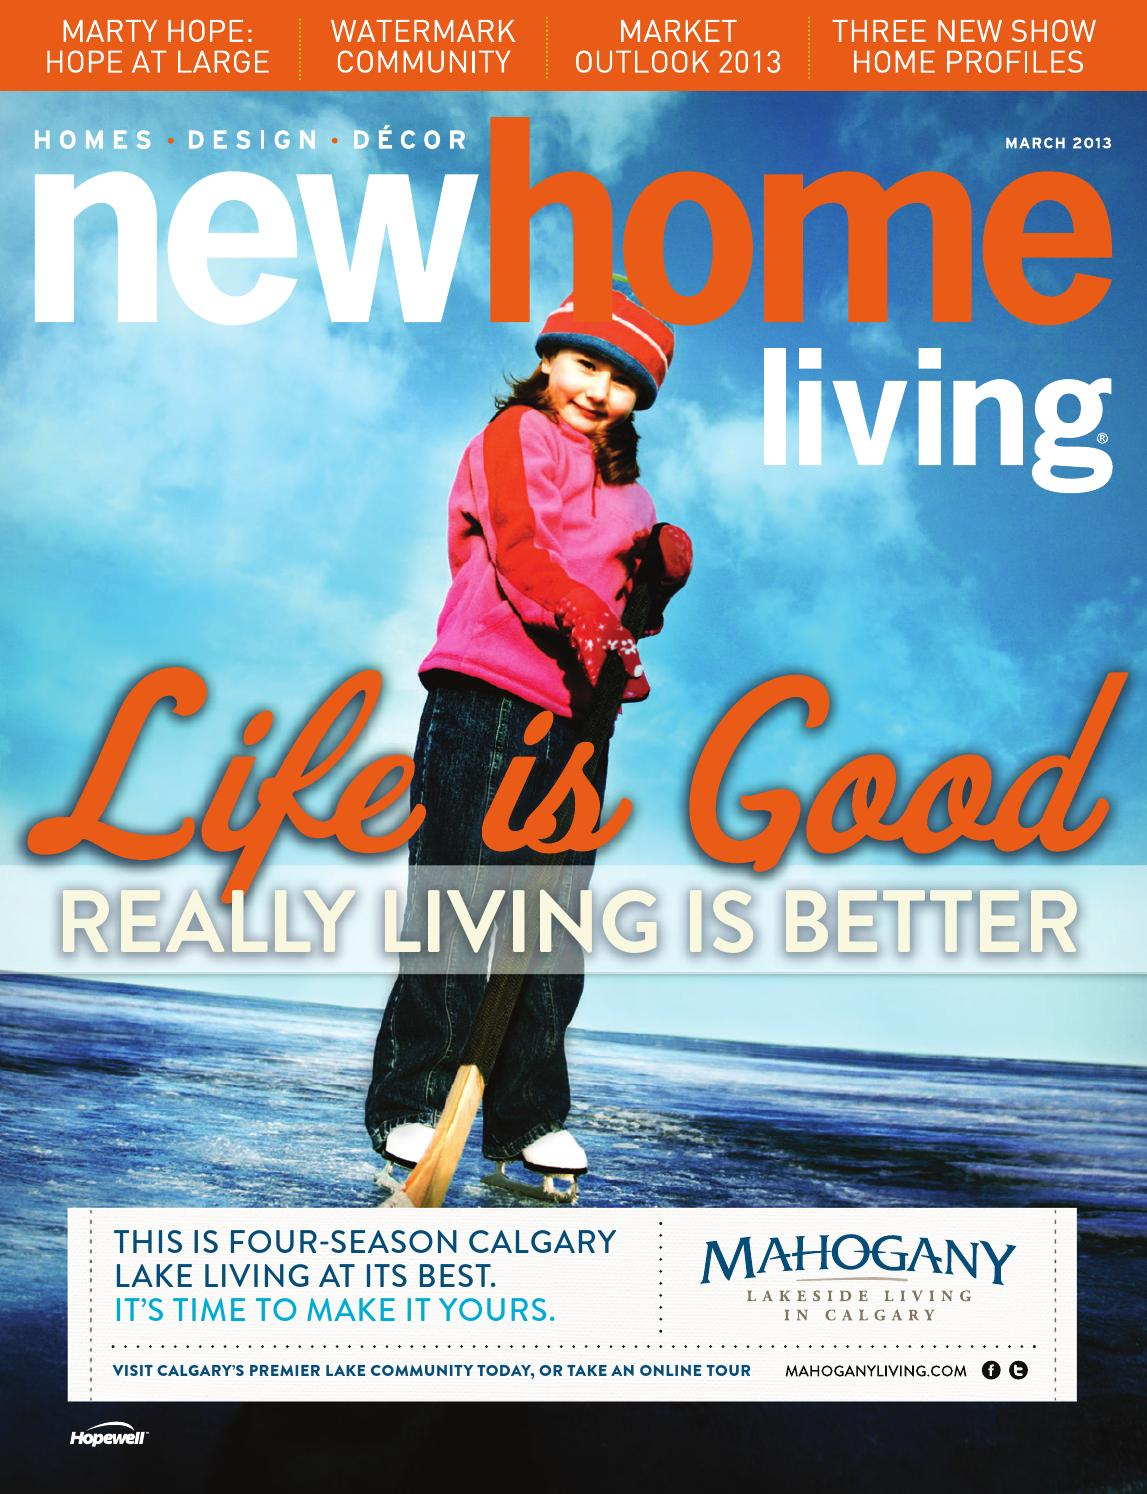 Calgary New Home Living March 2013 by Source Media Group - issuu